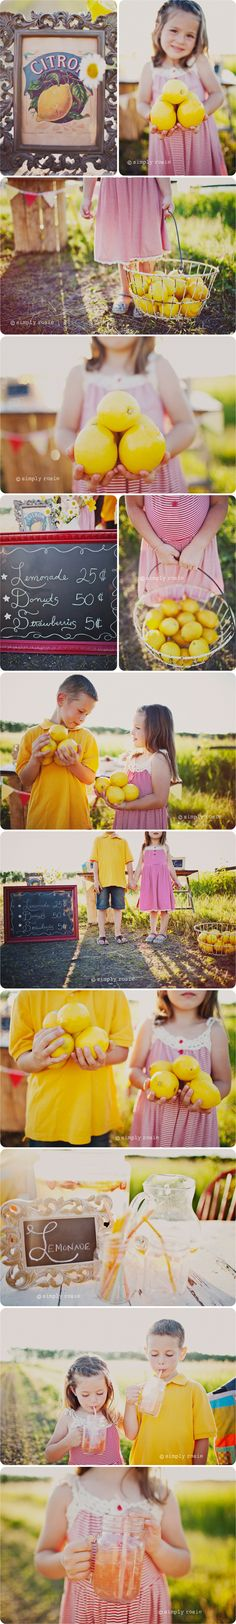 Cute summer photo shoot.  I love the use of lemons and the country feel. @Savanna louise